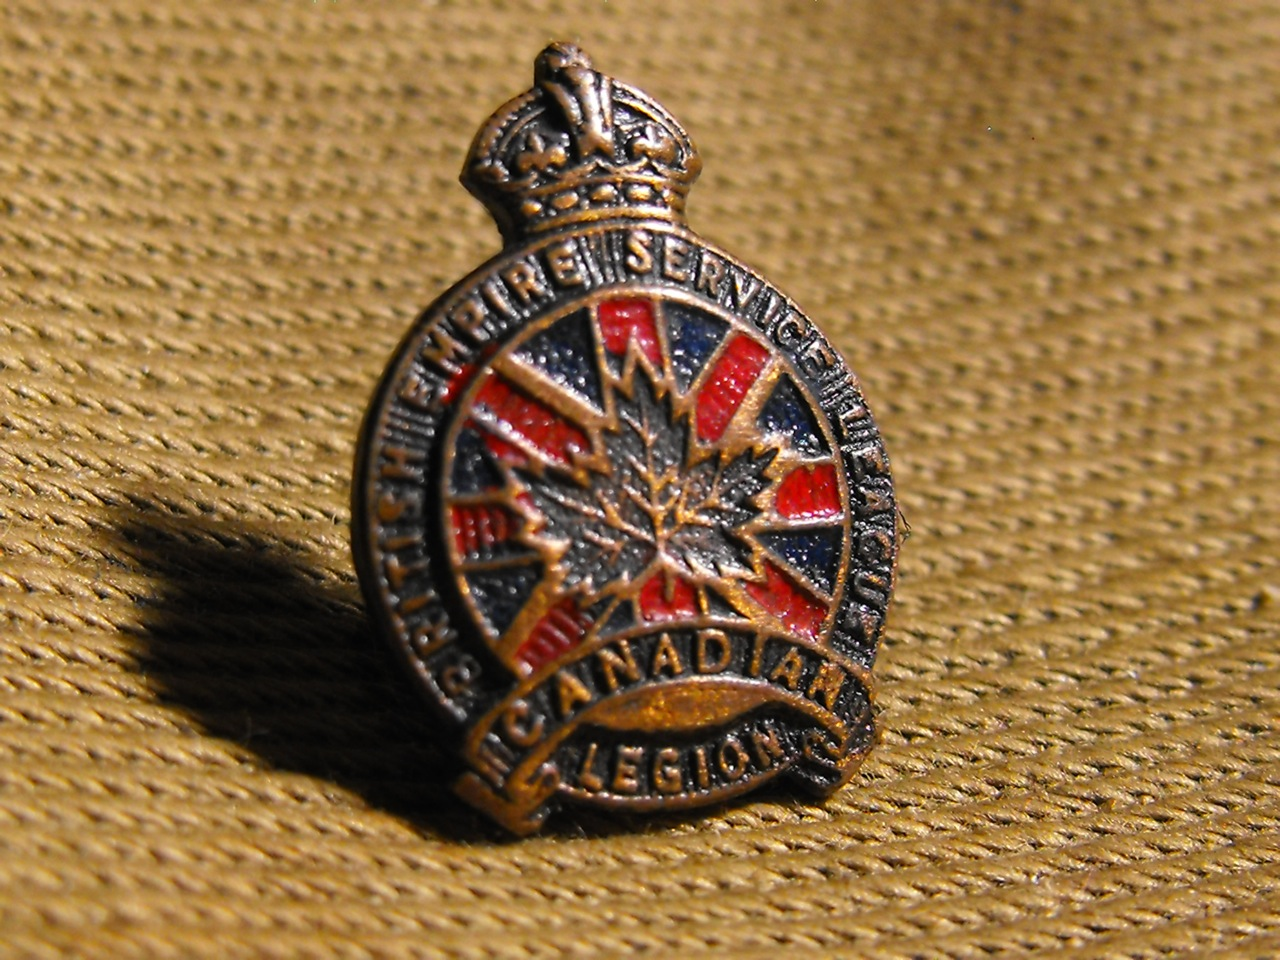 British Empire Service League Pin